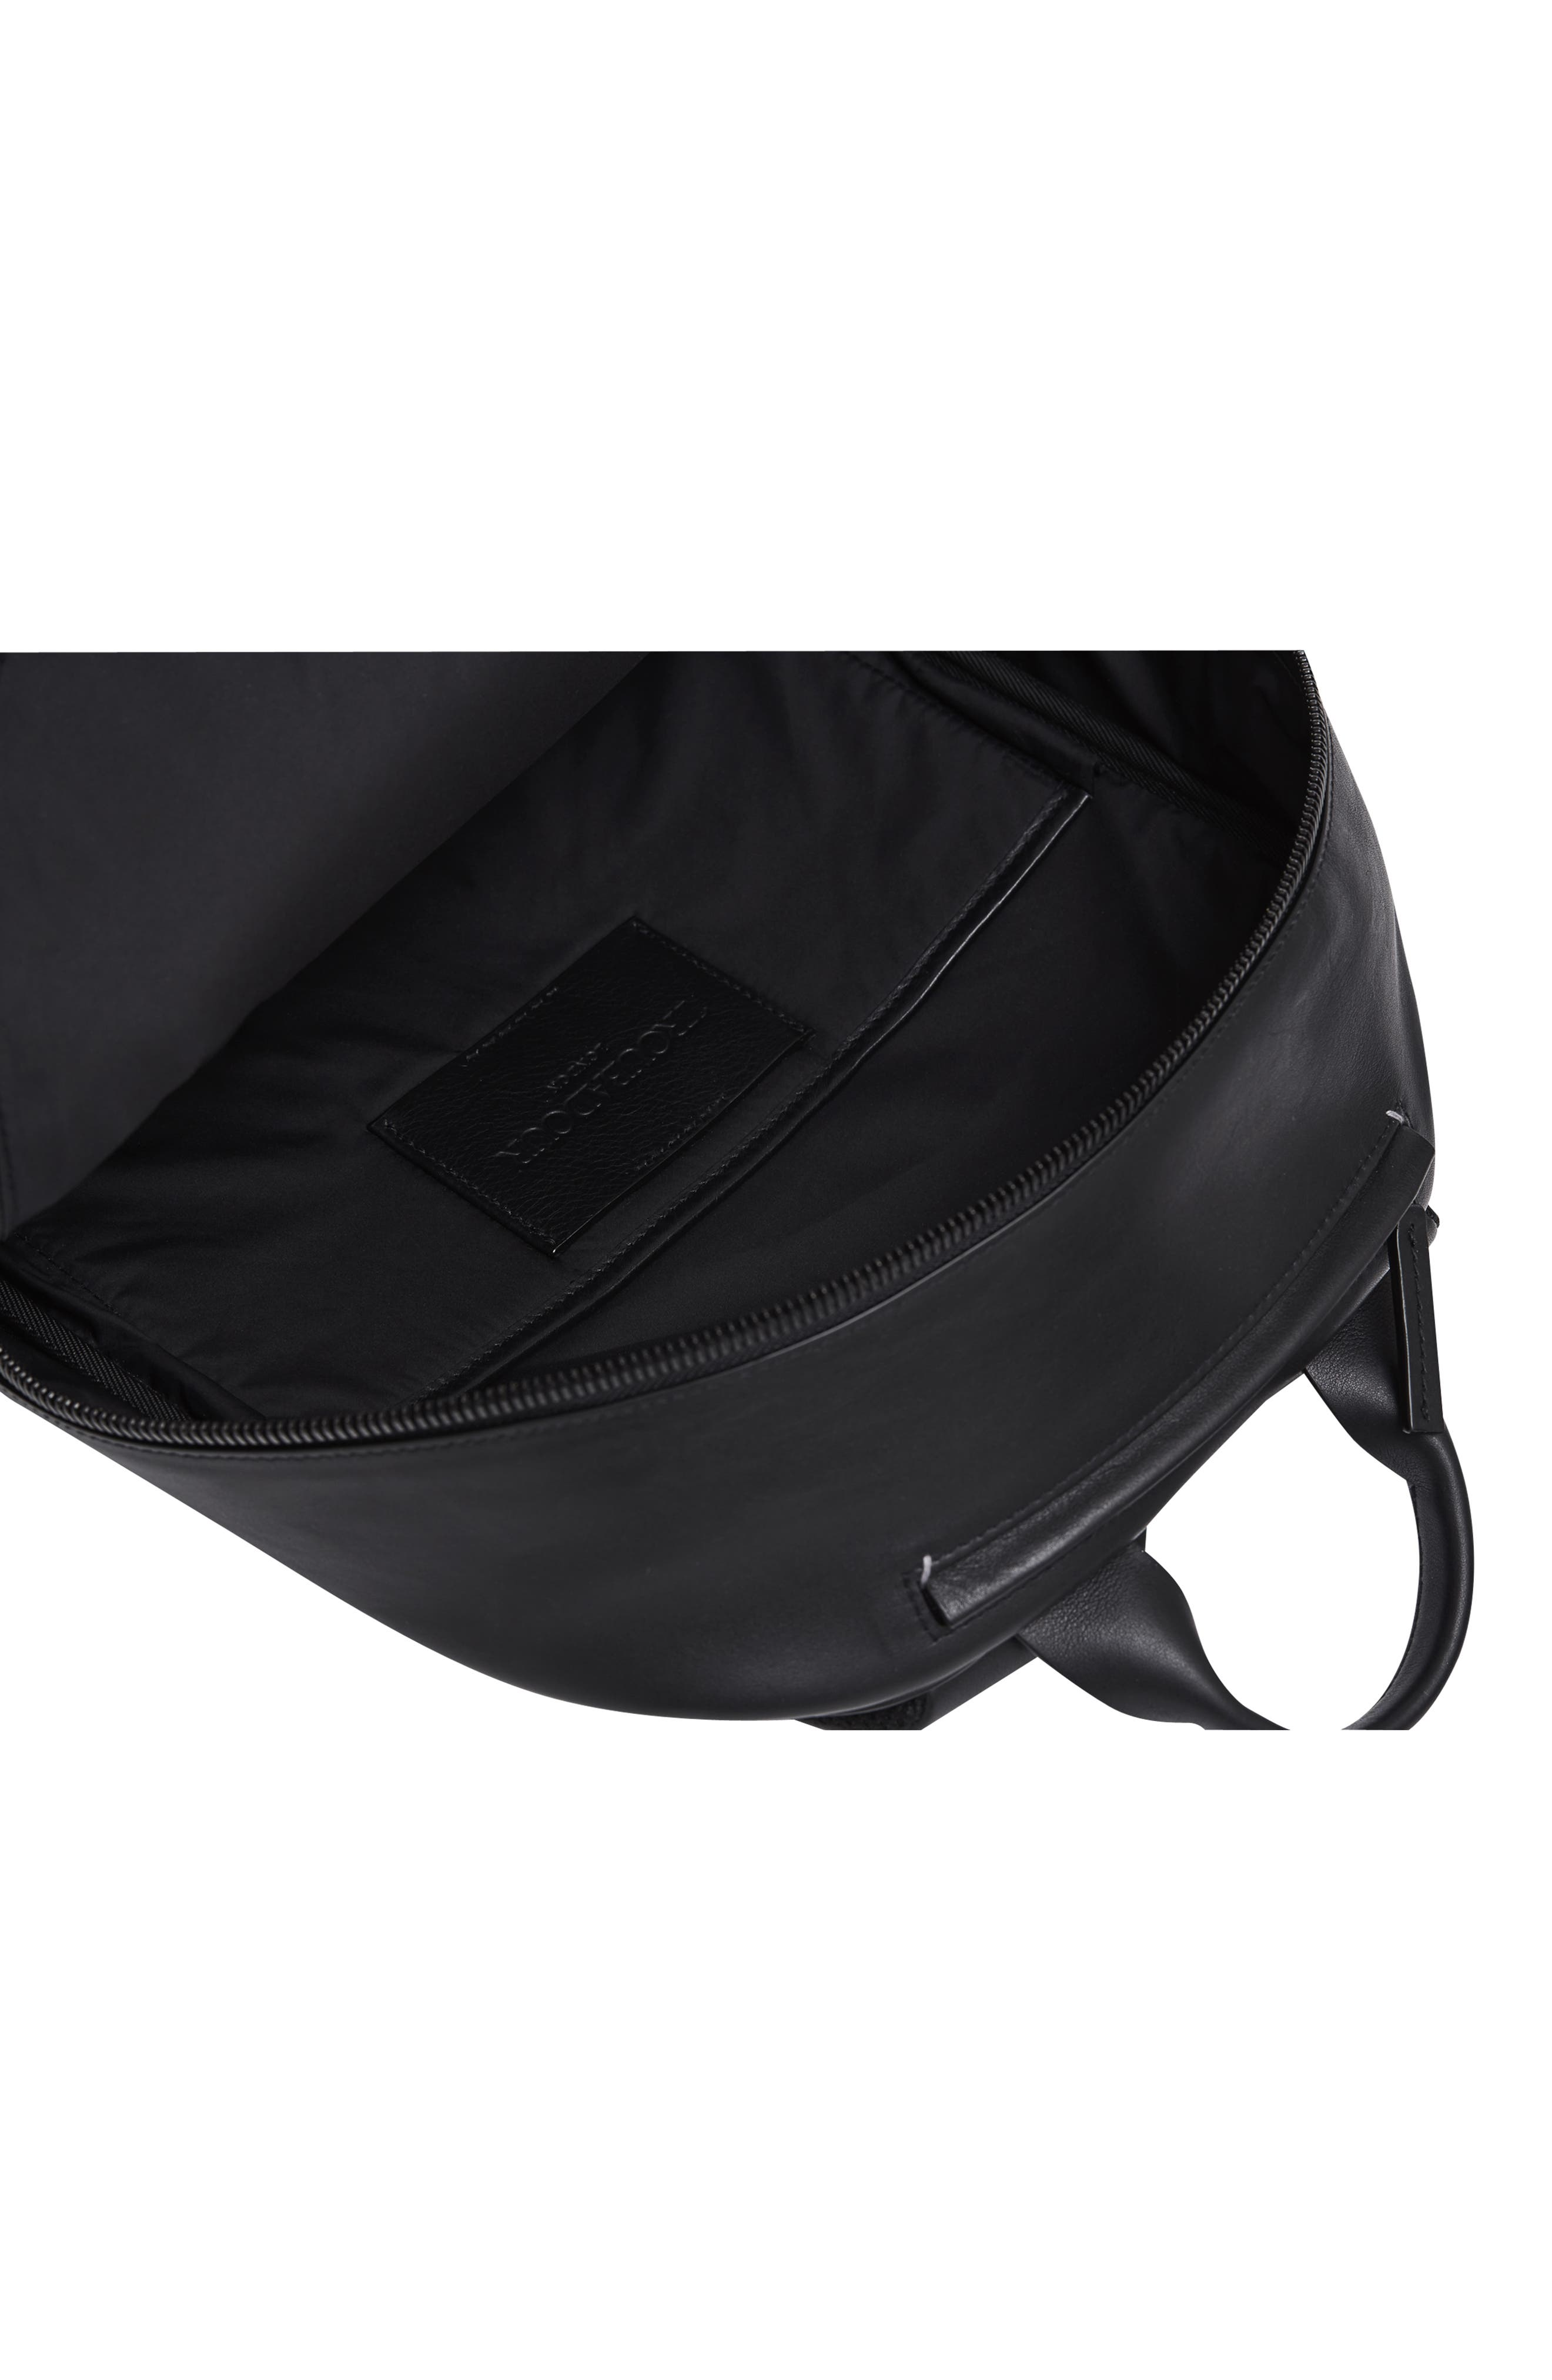 Leather Backpack,                             Alternate thumbnail 4, color,                             BLACK LEATHER